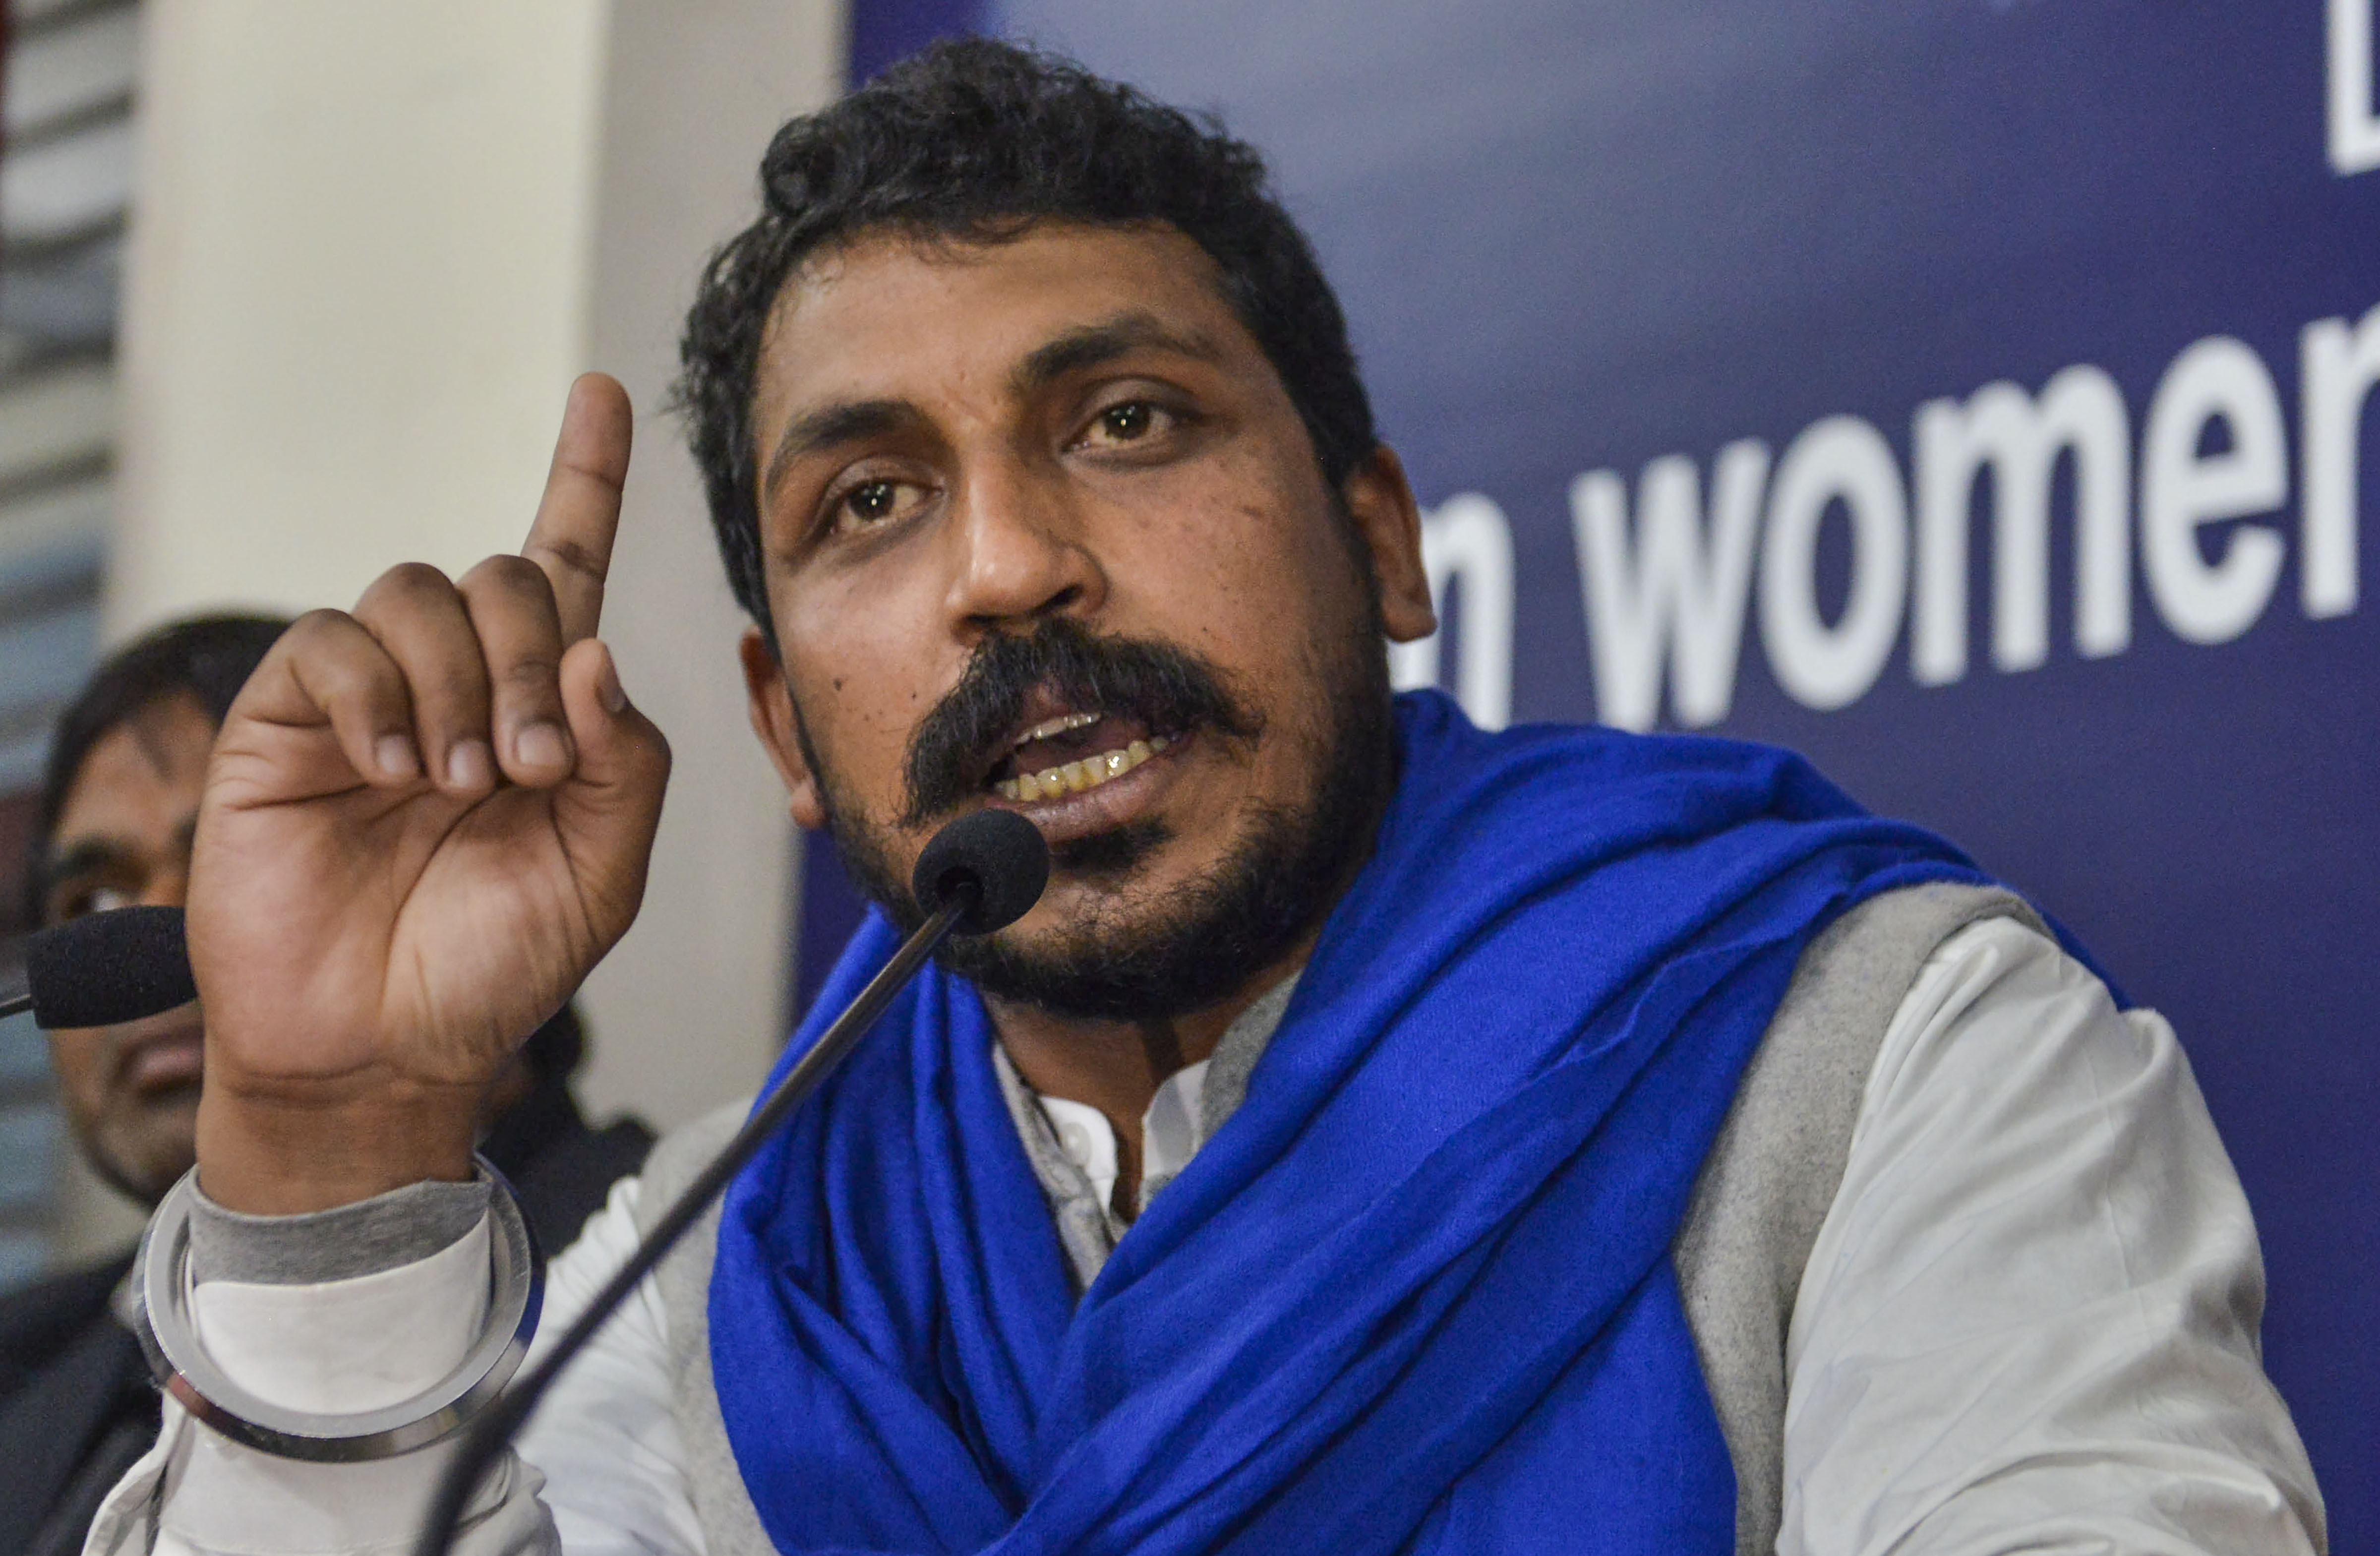 The court was hearing a plea filed by Bhim Army chief Chandrashekhar Azad seeking modification of the conditions imposed on him in his bail order.